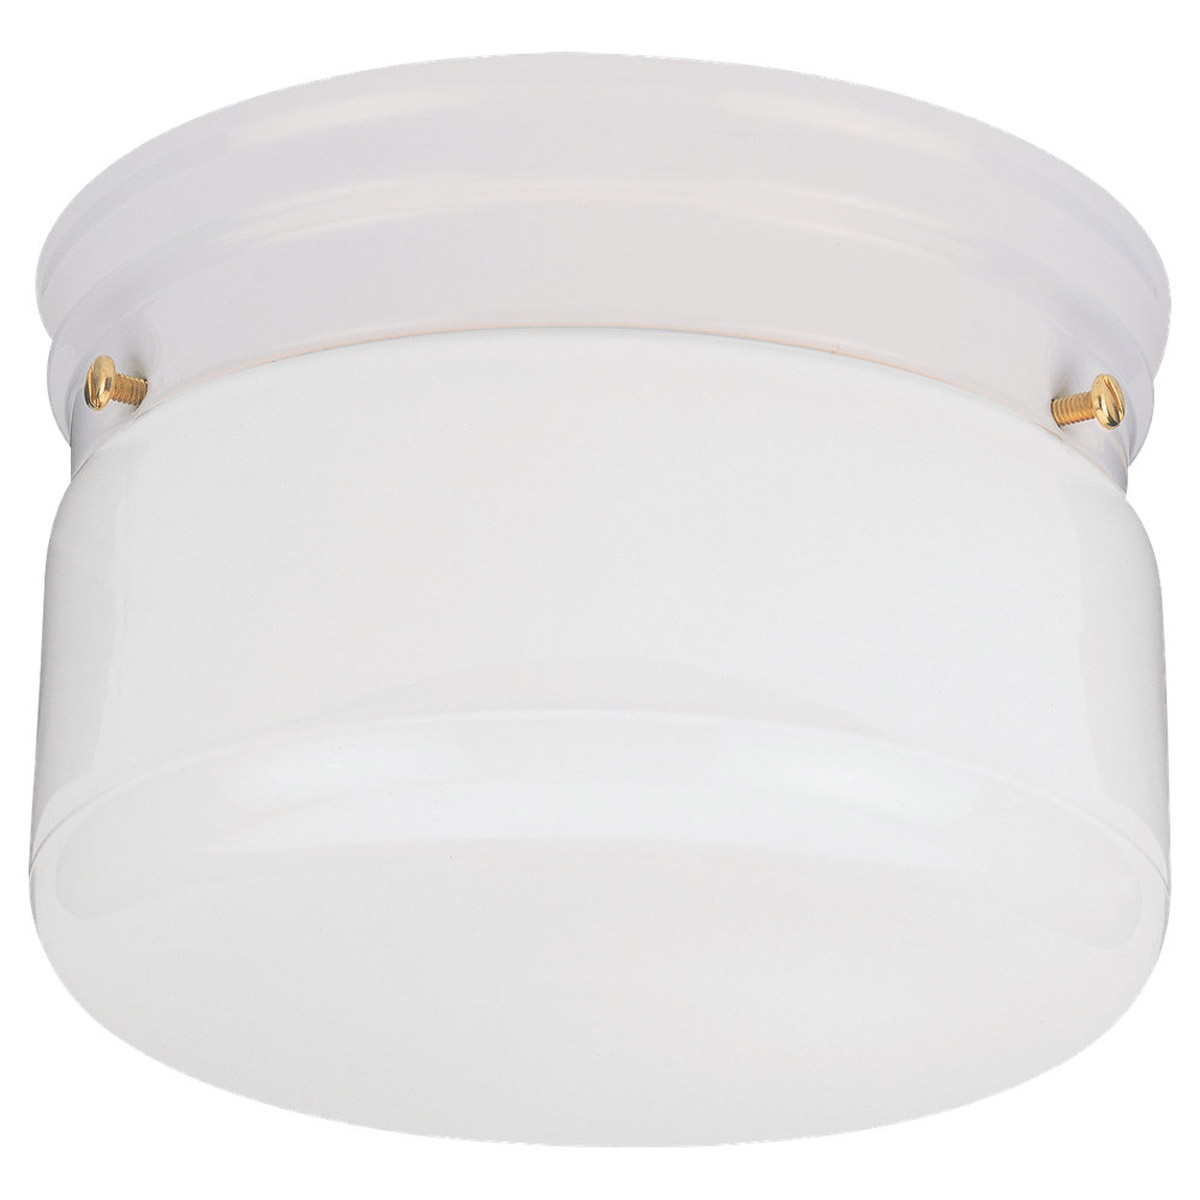 Sea Gull Lighting Economy Flush Mount 1 Light Flush Mount in White 5321-15